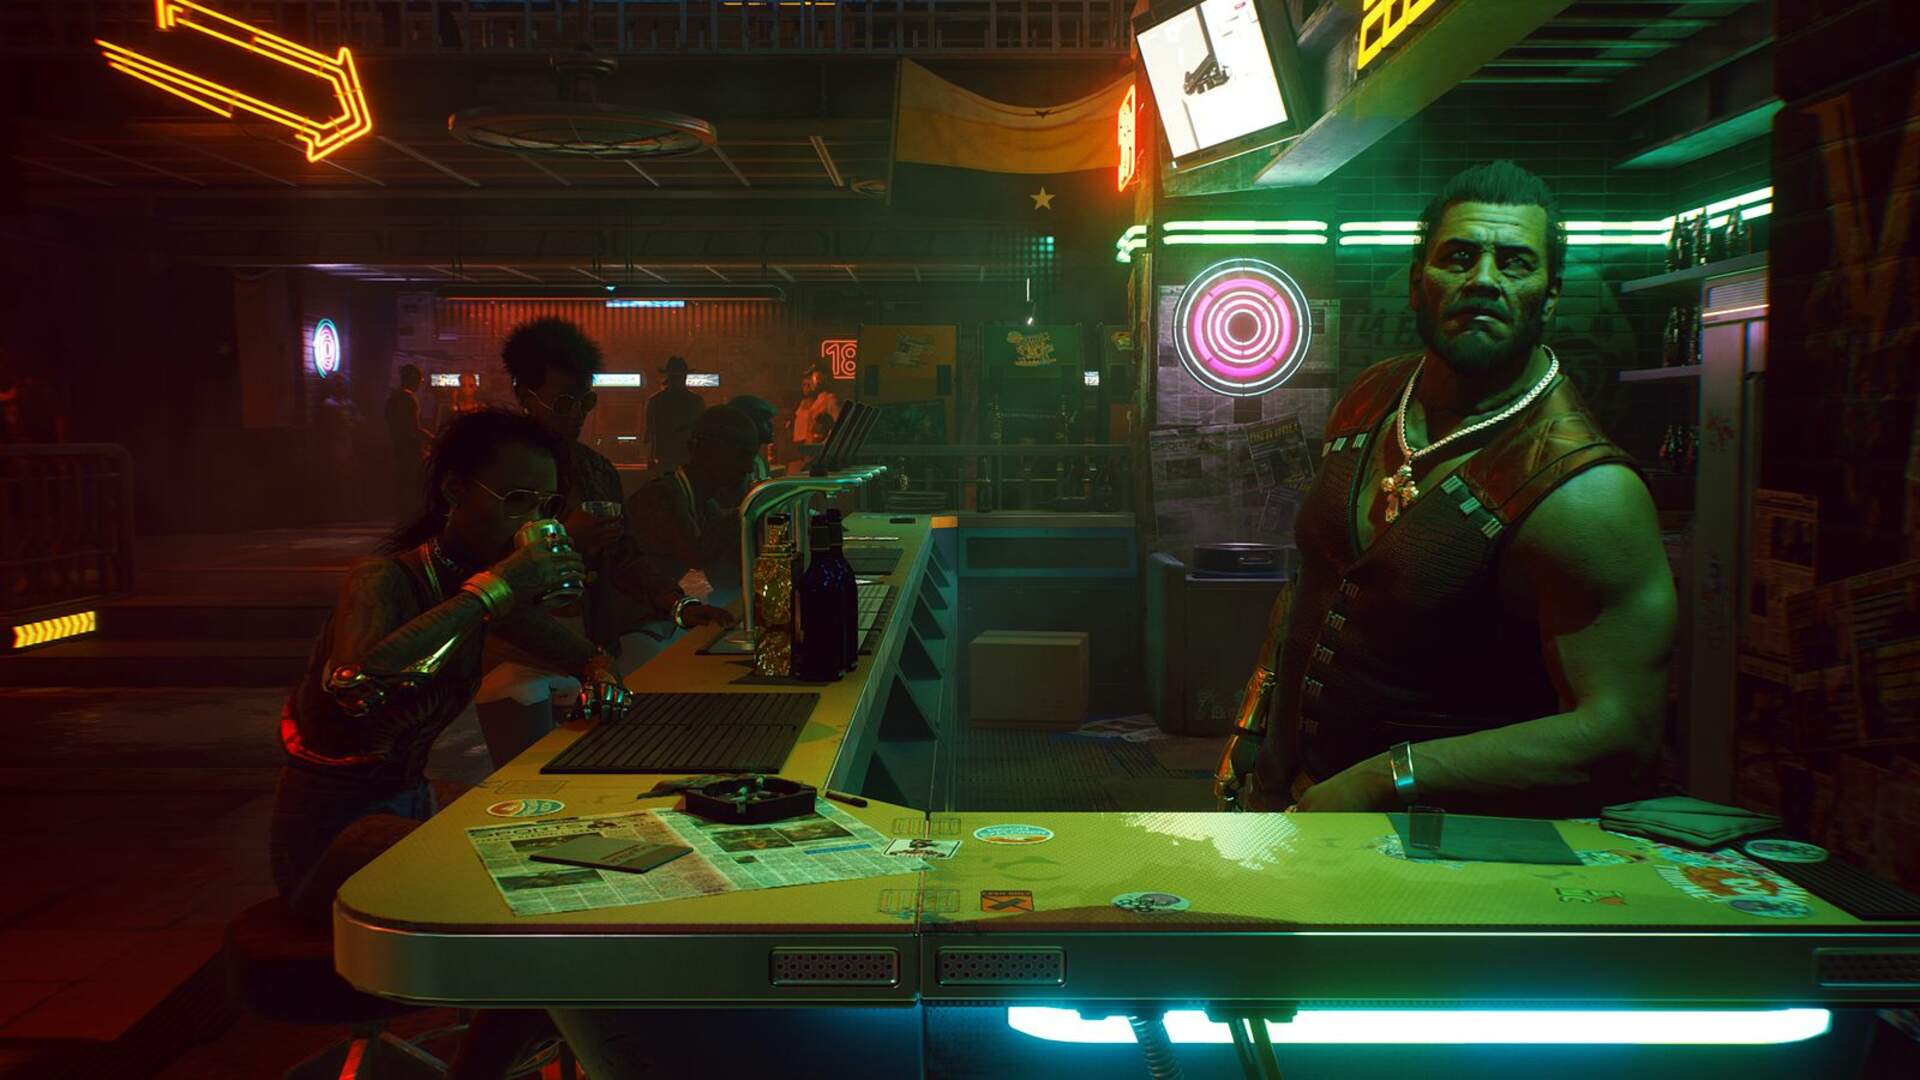 Cyberpunk 2077's New Gameplay Is Hiding a Witcher 3 Easter Egg